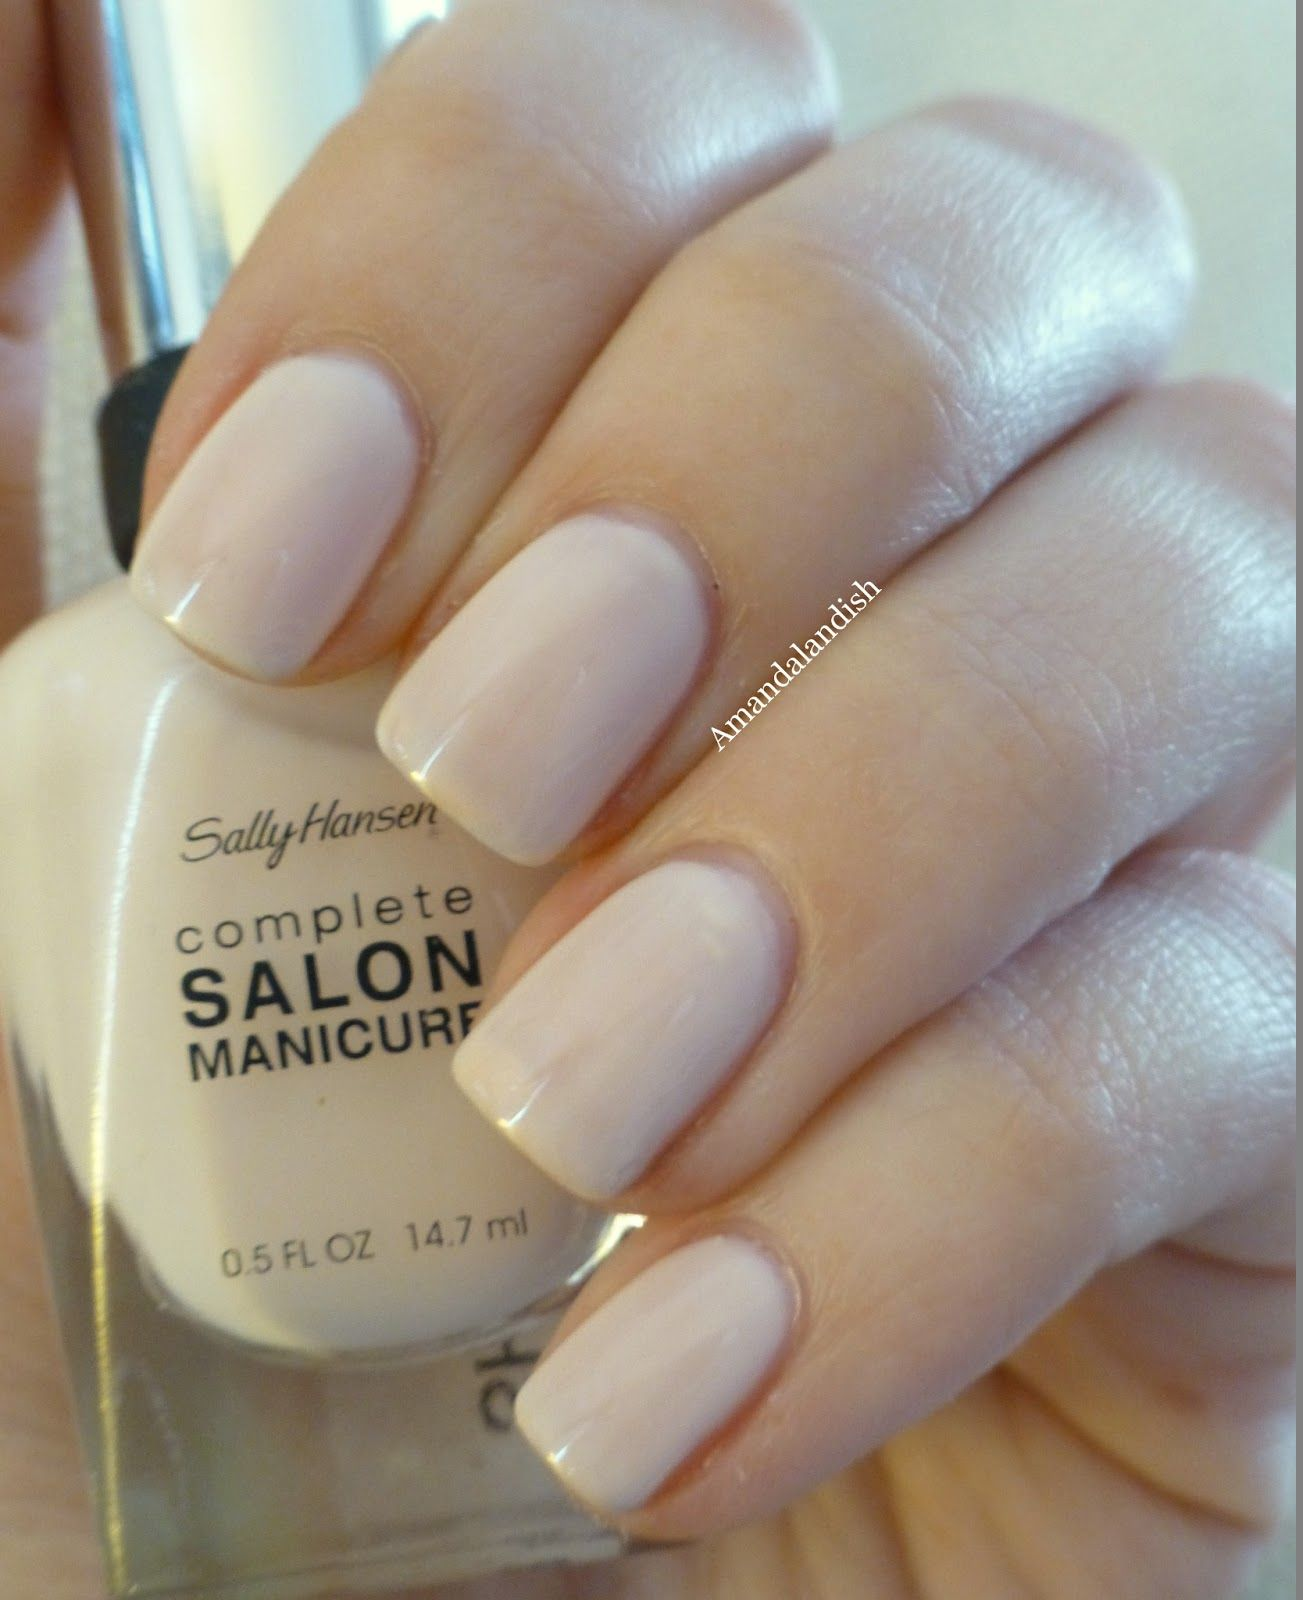 Sally Hansen Complete Salon Manicure Sheer